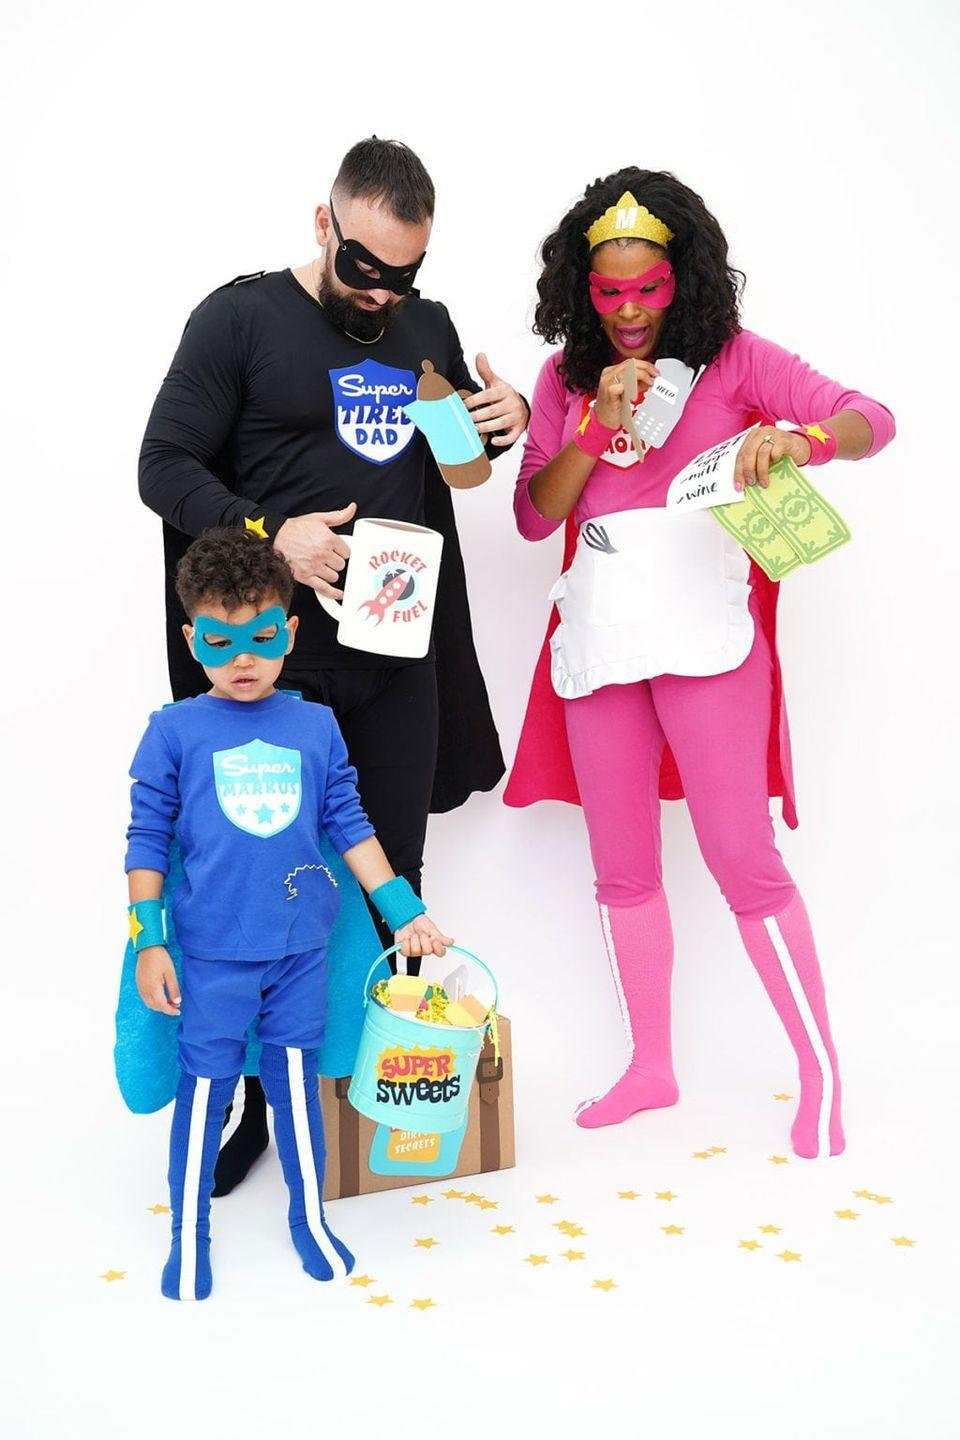 """<p>Not all heroes wear capes, but you and your family absolutely can thanks to this fun and surprisingly easy DIY costume! This is a perfect choice if you've got access to a Cricut Maker or similar cutting machine–and though it's designed for a family of three, the pattern can easily be customized to accommodate as many little ones as you need.</p><p><strong>Get the tutorial at <a href=""""https://damasklove.com/how-to-make-family-superhero-costumes-with-cricut/"""" rel=""""nofollow noopener"""" target=""""_blank"""" data-ylk=""""slk:Damask Love"""" class=""""link rapid-noclick-resp"""">Damask Love</a>.</strong></p><p><a class=""""link rapid-noclick-resp"""" href=""""https://www.amazon.com/Neenah-80944-01-Astrobrights-Colored-Cardstock/dp/B01LX0UJBN/ref=sr_1_1_sspa?dchild=1&keywords=Colored+cardstock&qid=1596030420&sr=8-1-spons&psc=1&spLa=ZW5jcnlwdGVkUXVhbGlmaWVyPUFYT1pPN1lLMEtFUVUmZW5jcnlwdGVkSWQ9QTAzNzE1OTIzTDFENkoyUU1ZSjMwJmVuY3J5cHRlZEFkSWQ9QTA2MTg4MzFJS1RWTEpPM05QUEsmd2lkZ2V0TmFtZT1zcF9hdGYmYWN0aW9uPWNsaWNrUmVkaXJlY3QmZG9Ob3RMb2dDbGljaz10cnVl&tag=syn-yahoo-20&ascsubtag=%5Bartid%7C10050.g.29074815%5Bsrc%7Cyahoo-us"""" rel=""""nofollow noopener"""" target=""""_blank"""" data-ylk=""""slk:SHOP COLORED CARDSTOCK"""">SHOP COLORED CARDSTOCK</a></p>"""